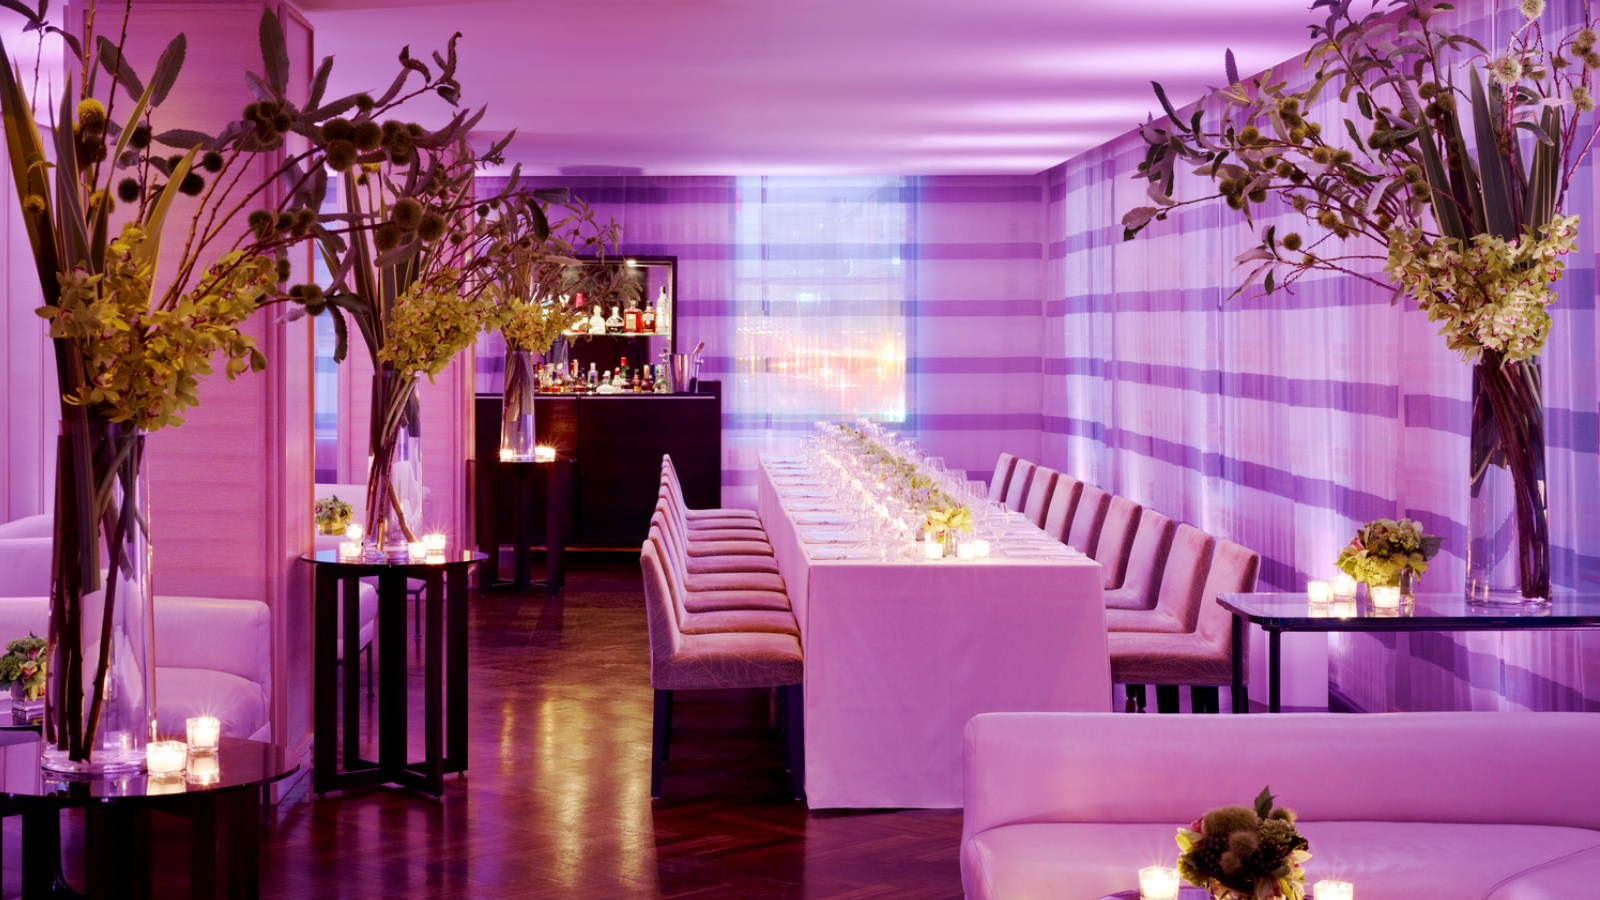 Vitrine event space with magenta lighting